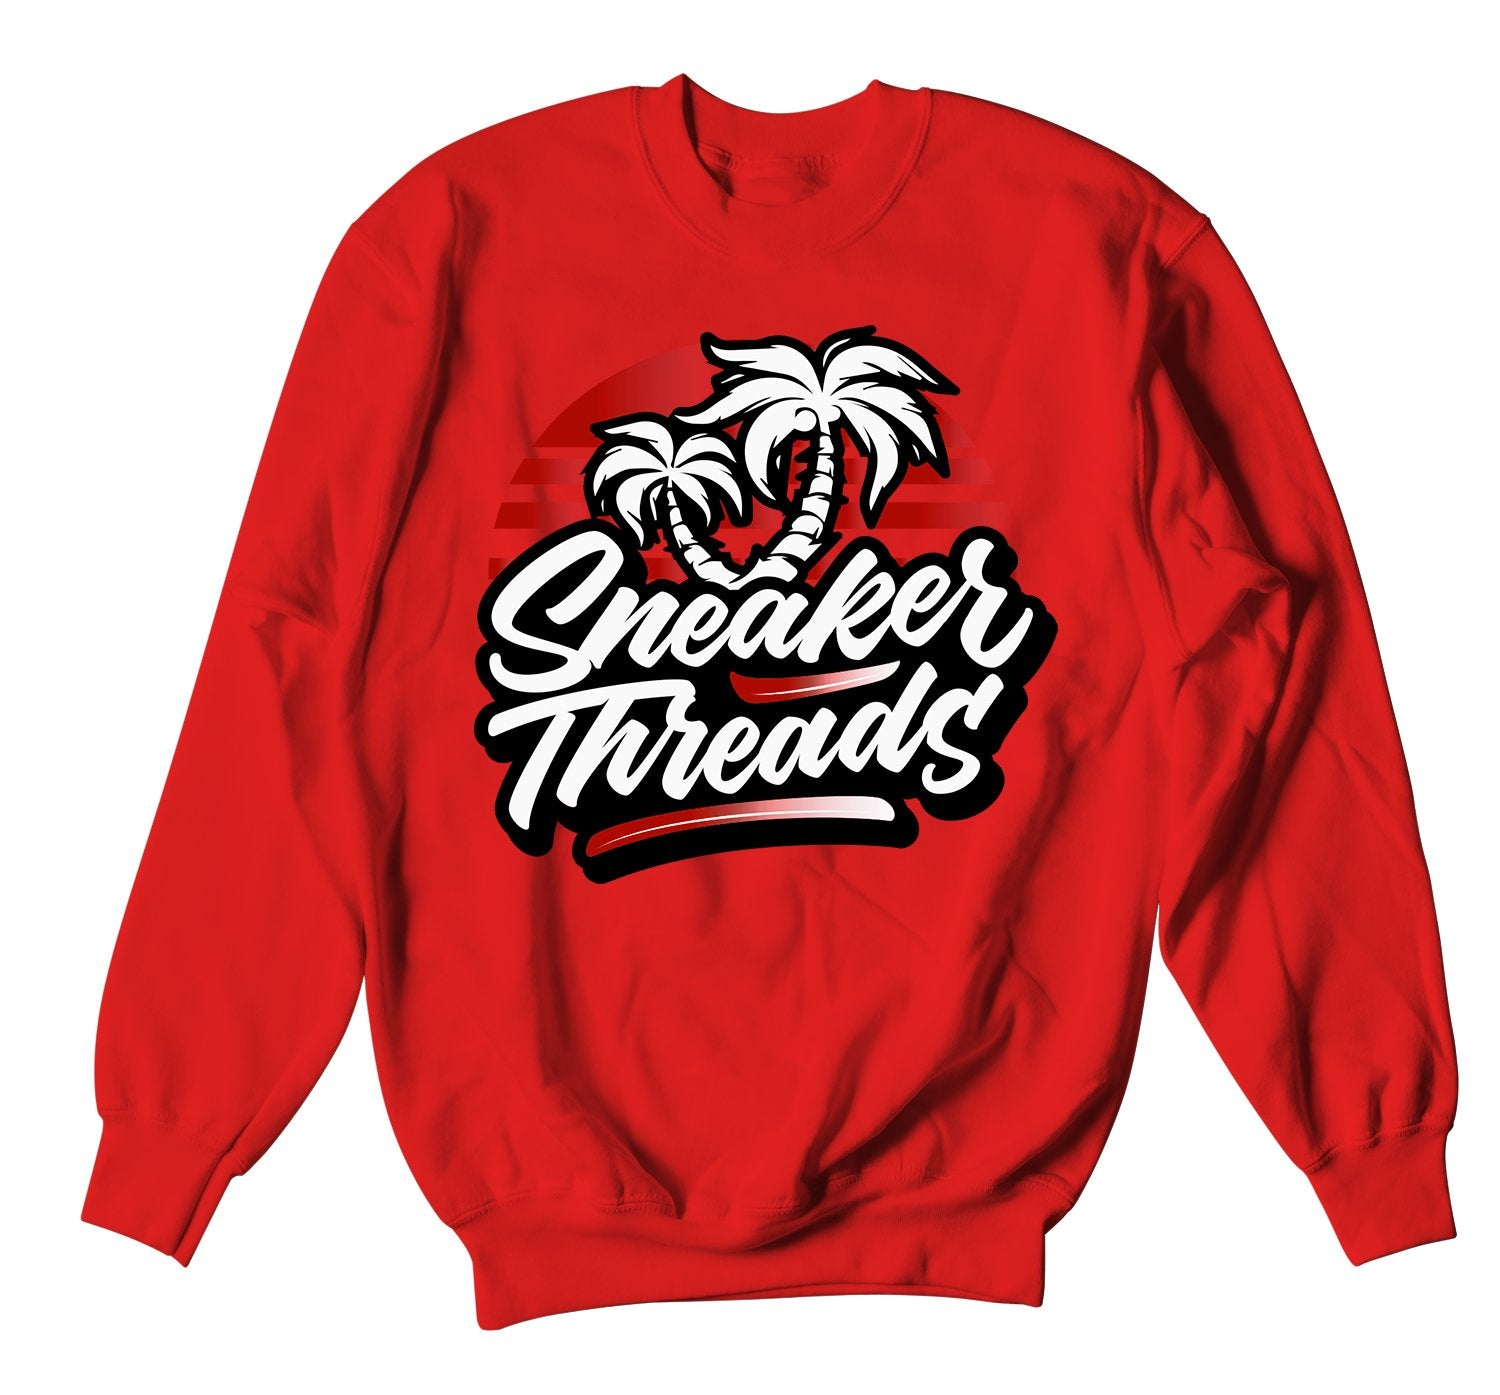 Crewnecks designed to match the red carpet 17s